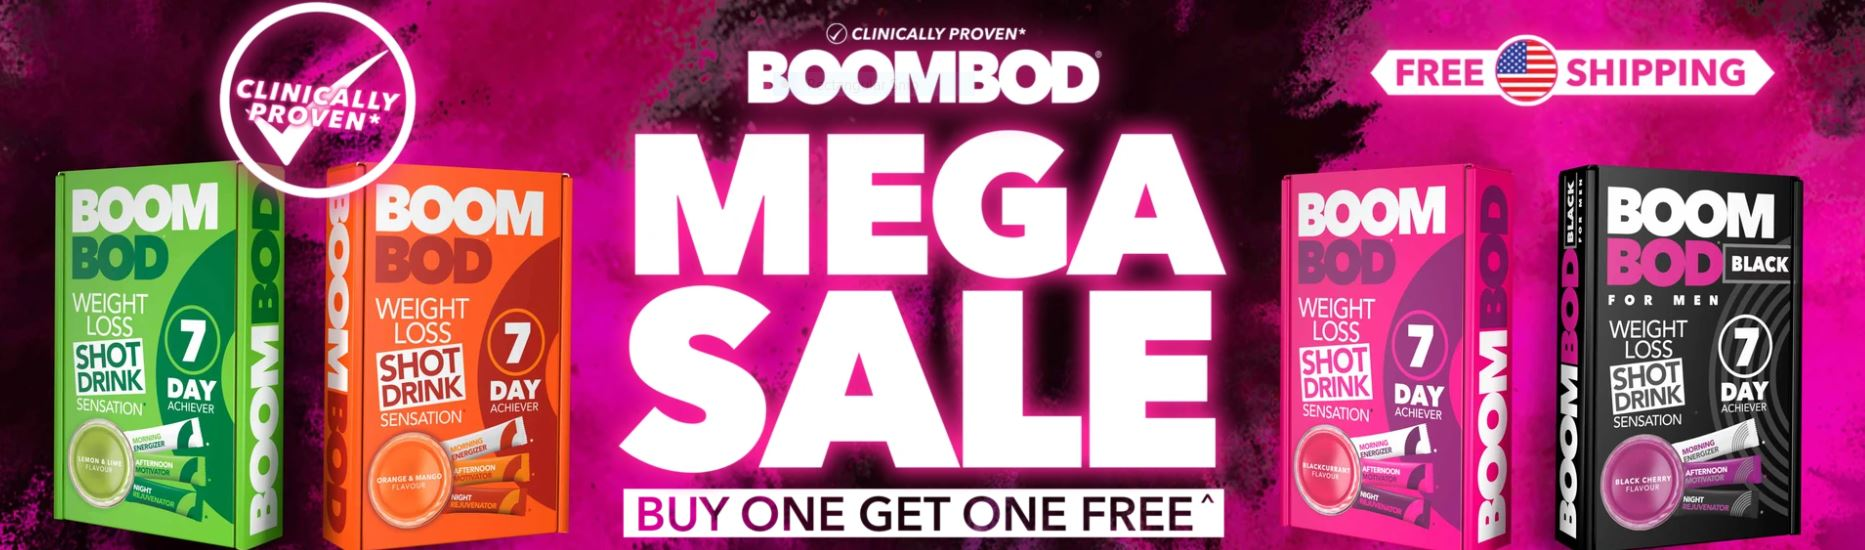 Boombod.com-coupon-code